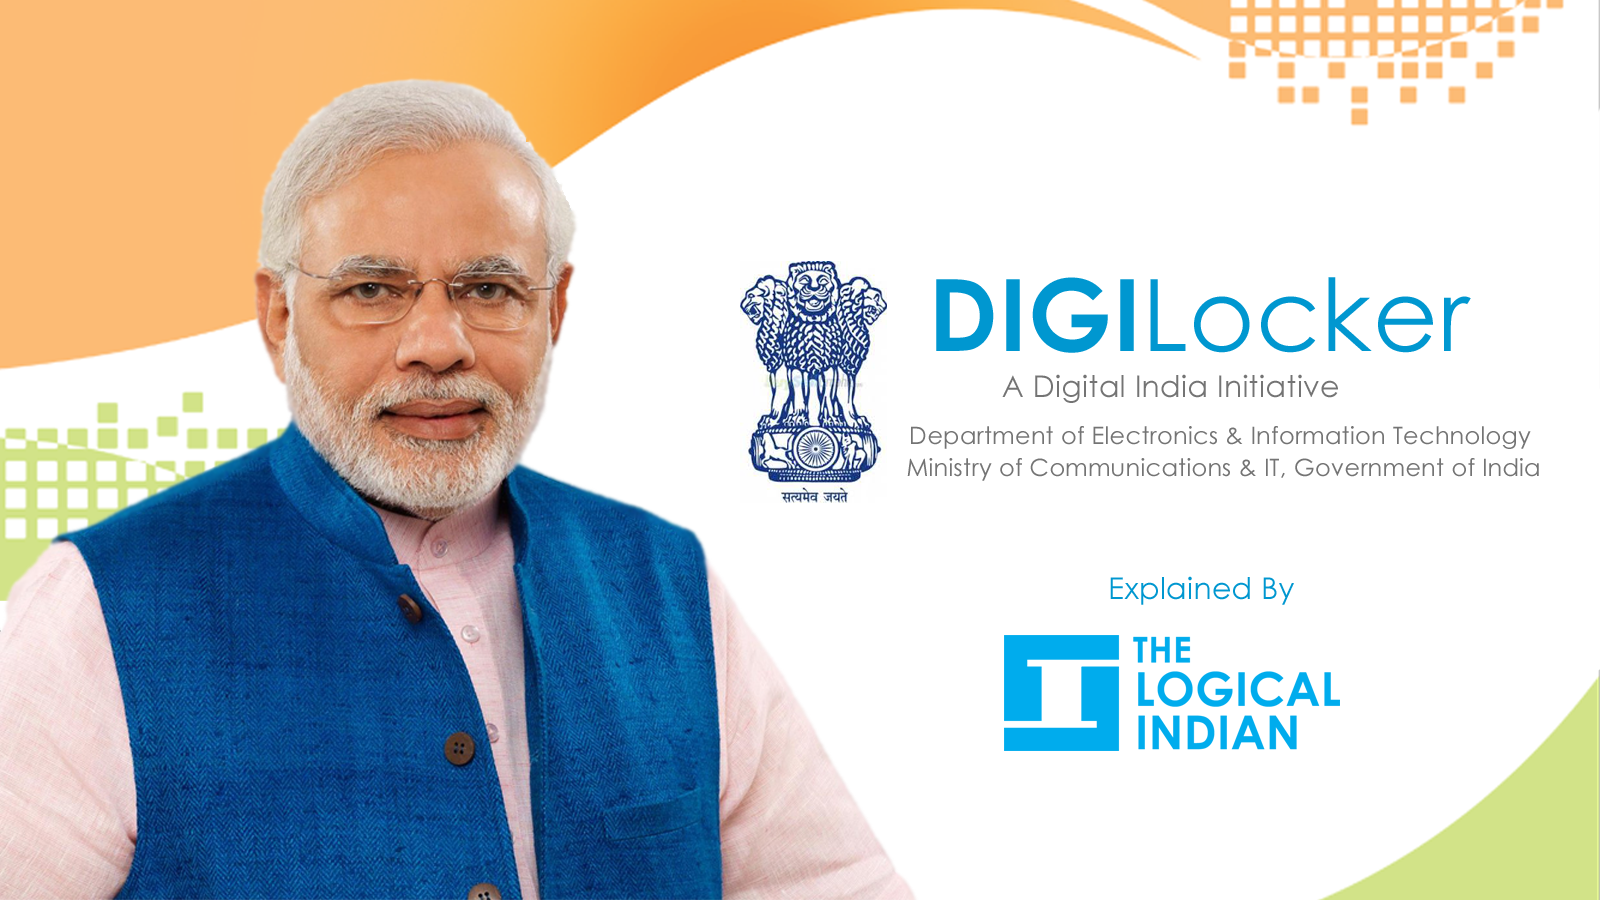 Watch the Video to Know How to Use DigiLocker?